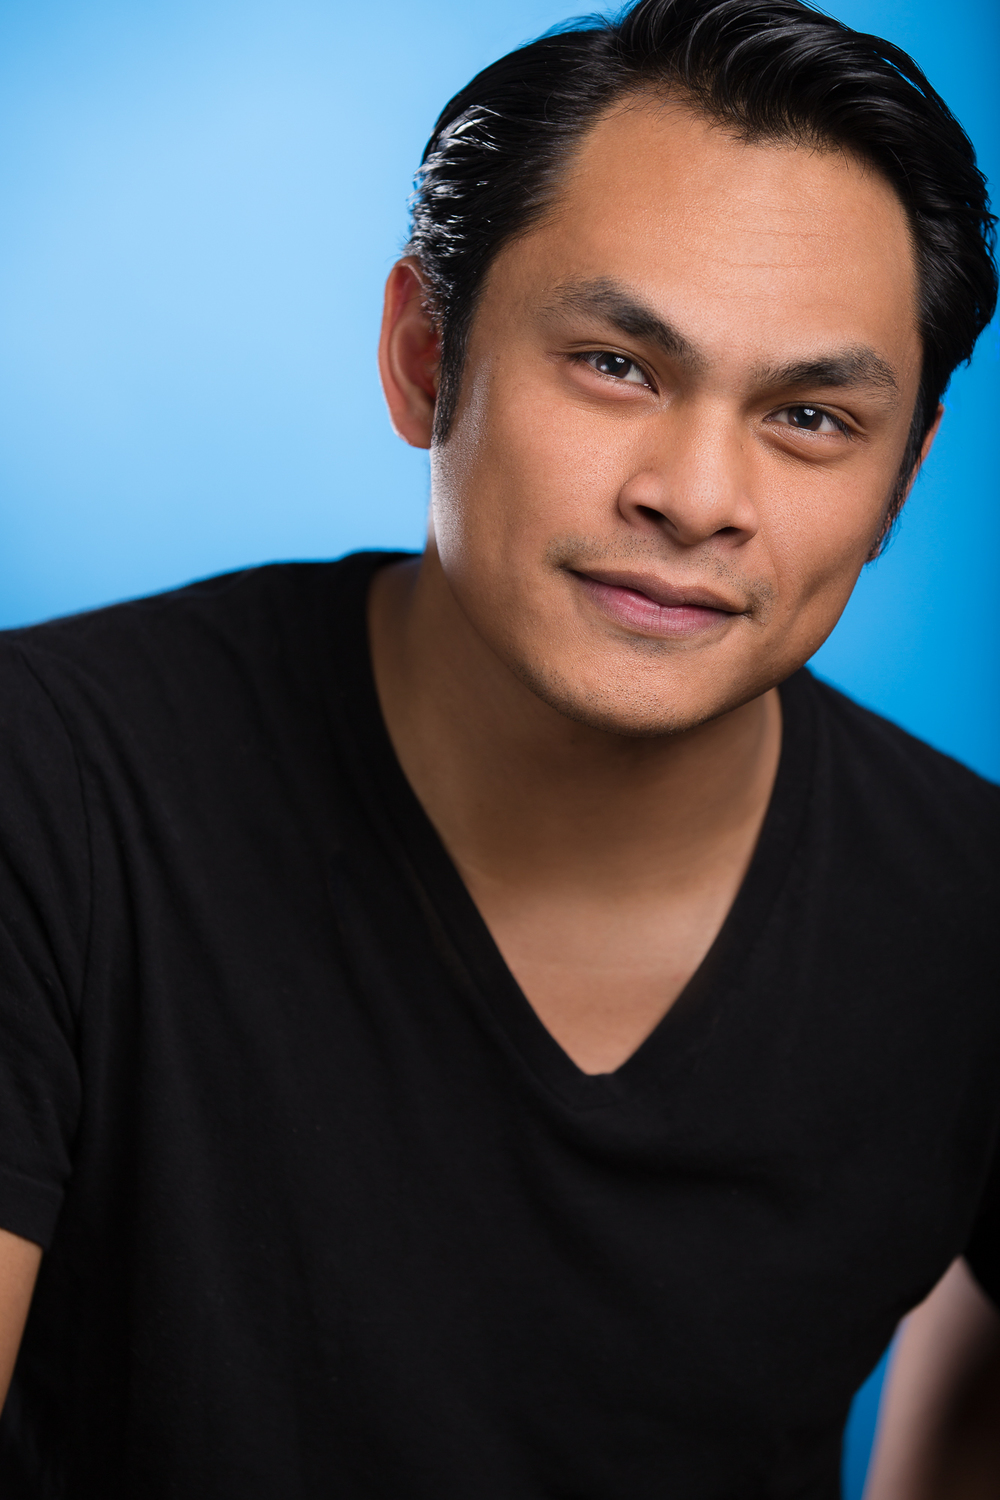 Devo Uy Headshots-047-Edit.jpg